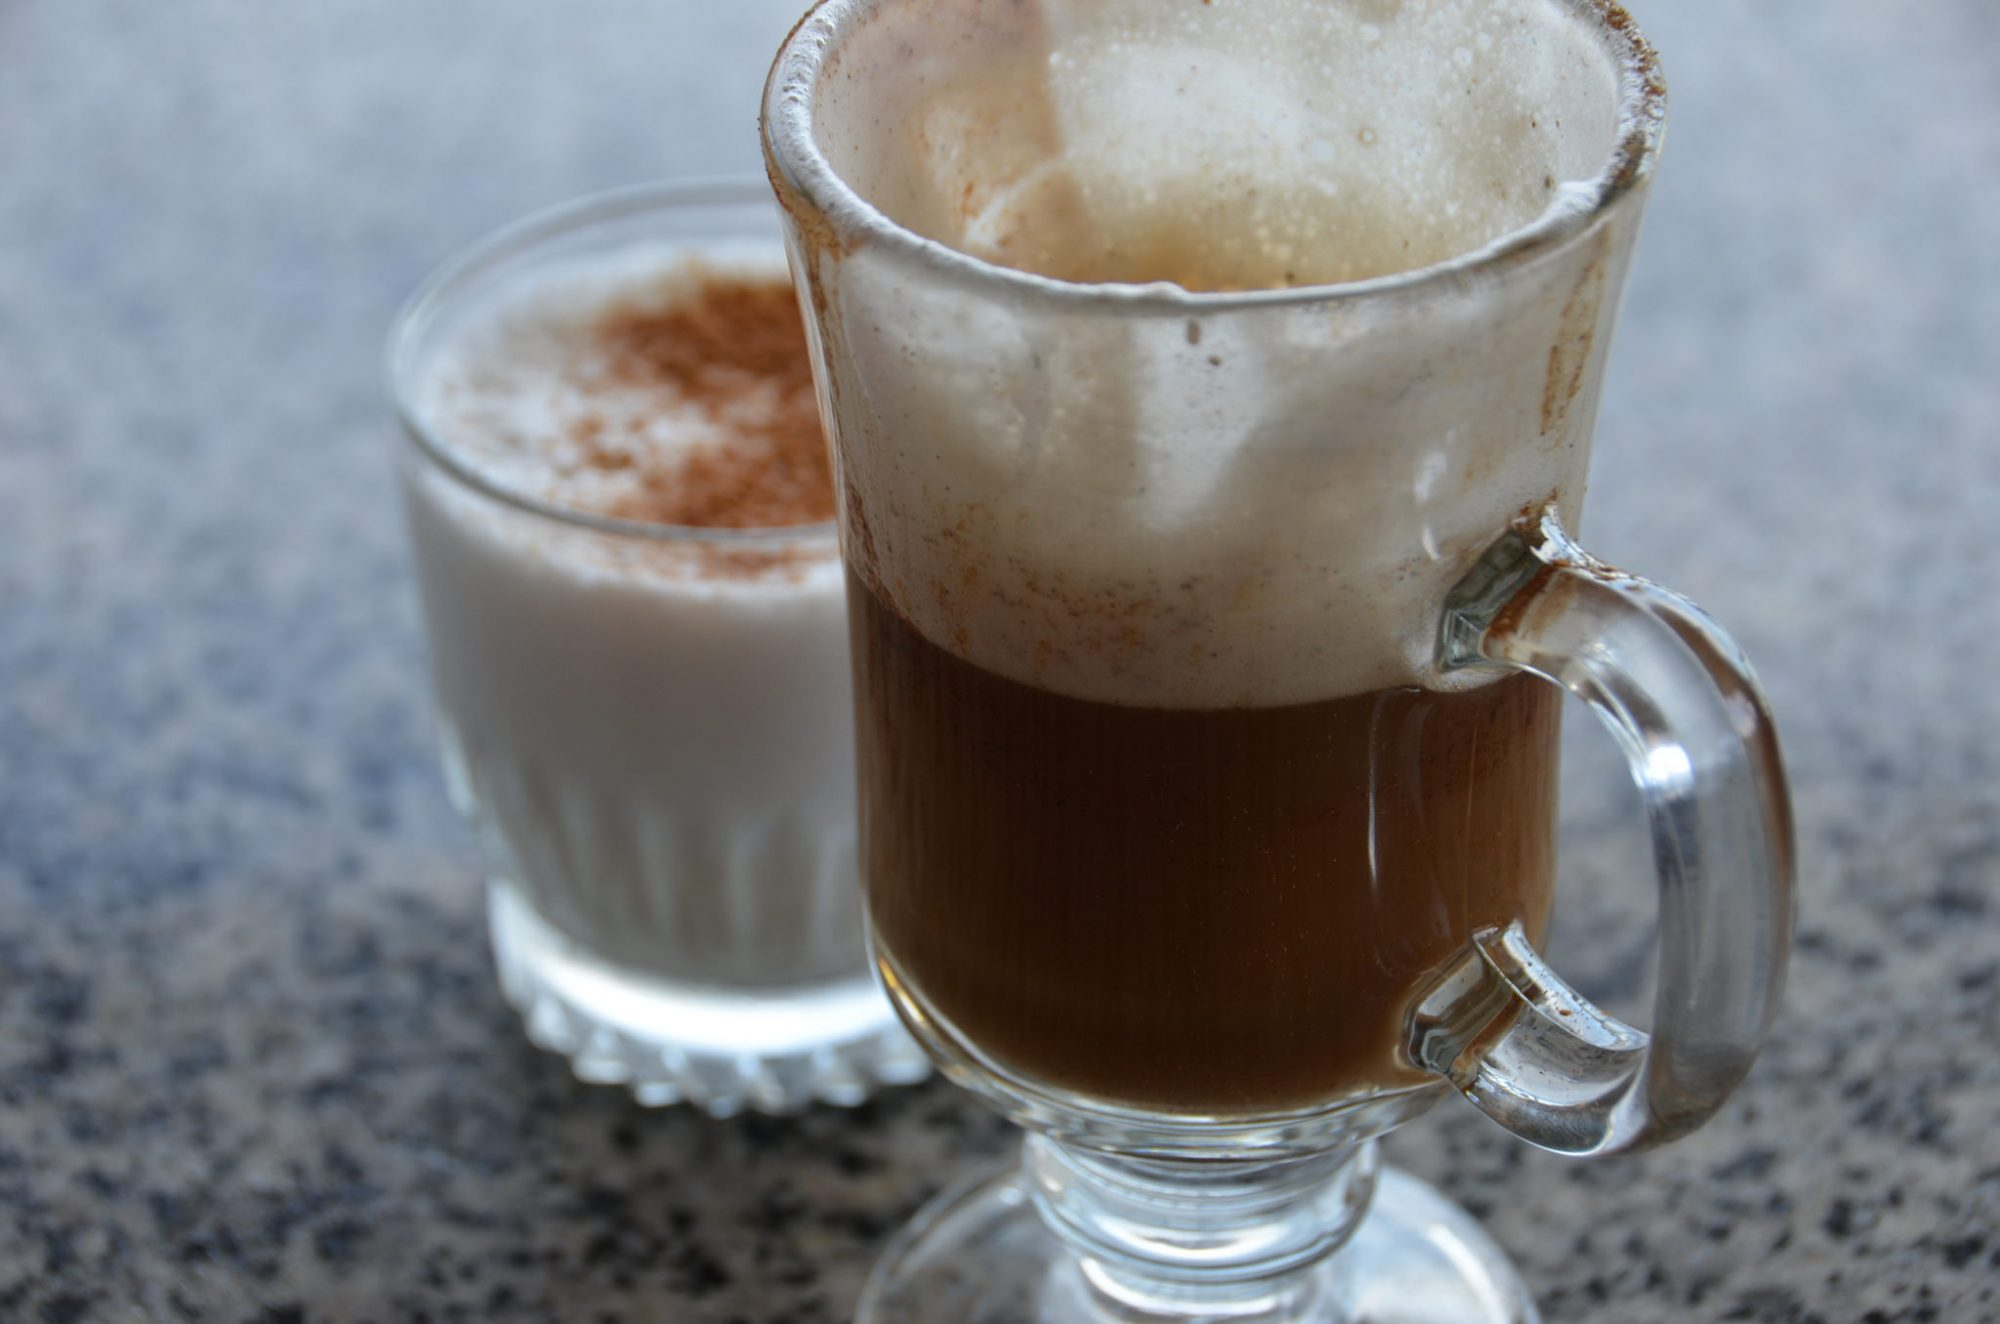 EC: You Can Now Buy Cuban Coffee in the United States